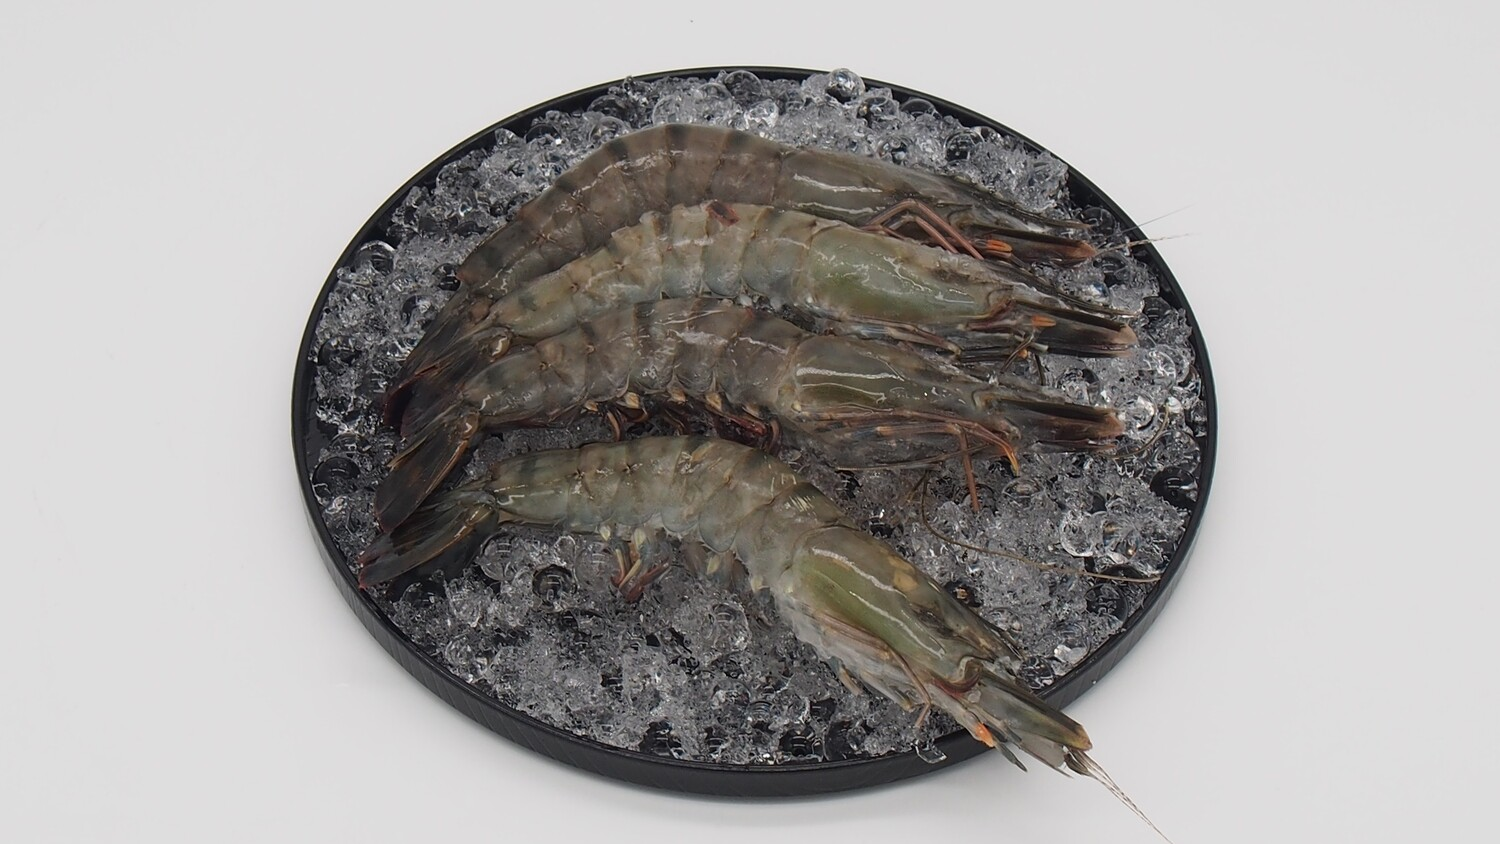 Pan Royal Black Tiger Prawns